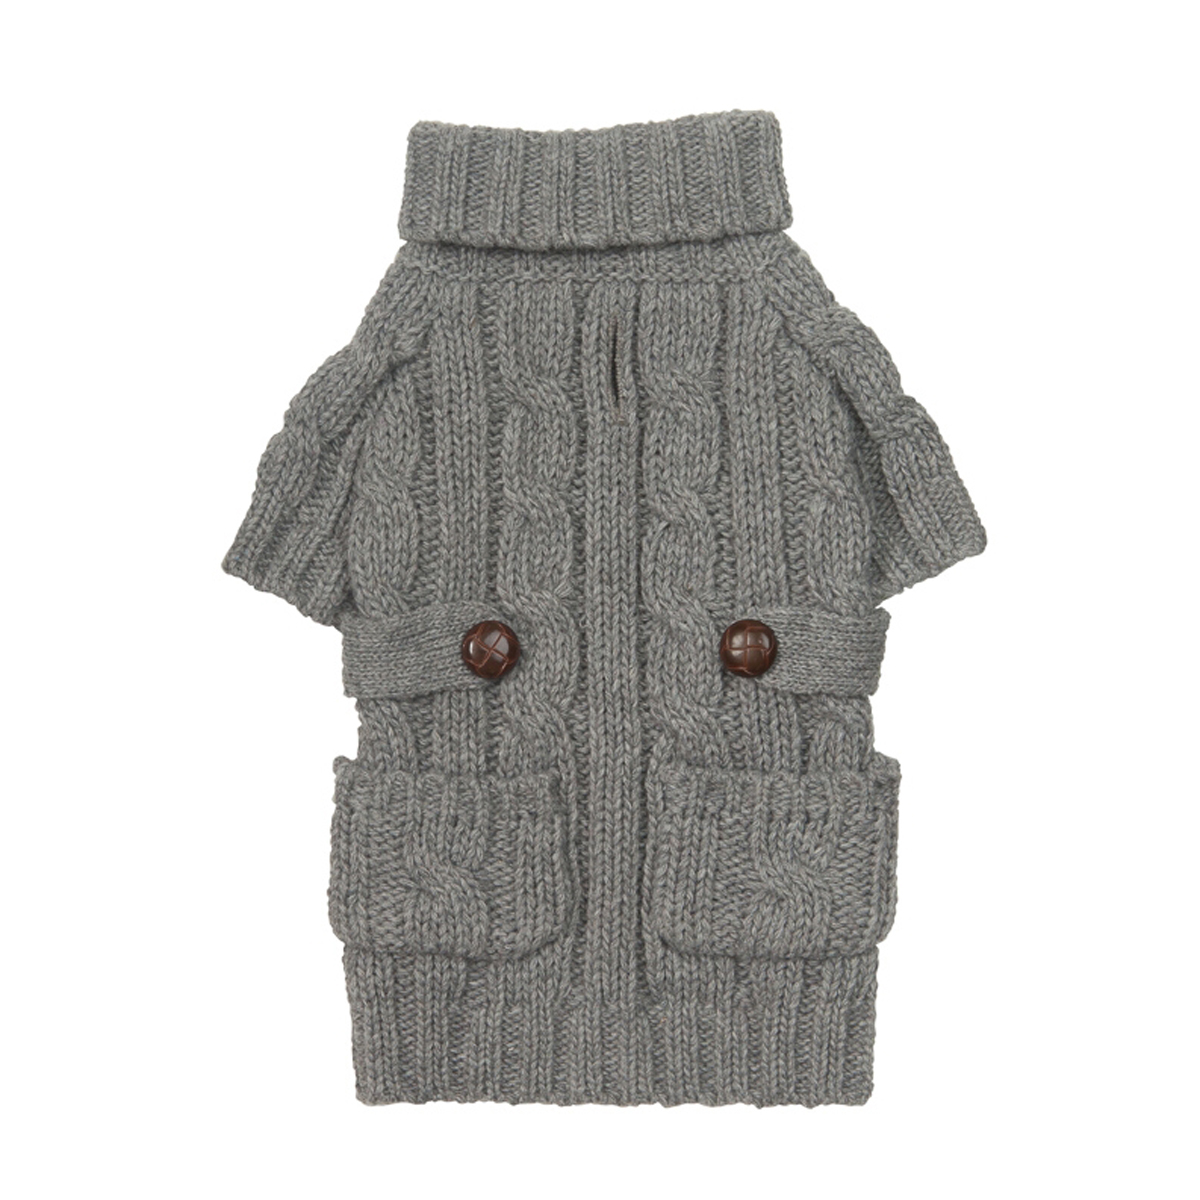 fabdog® Pocket Cable Knit Dog Sweater - Heather Gray